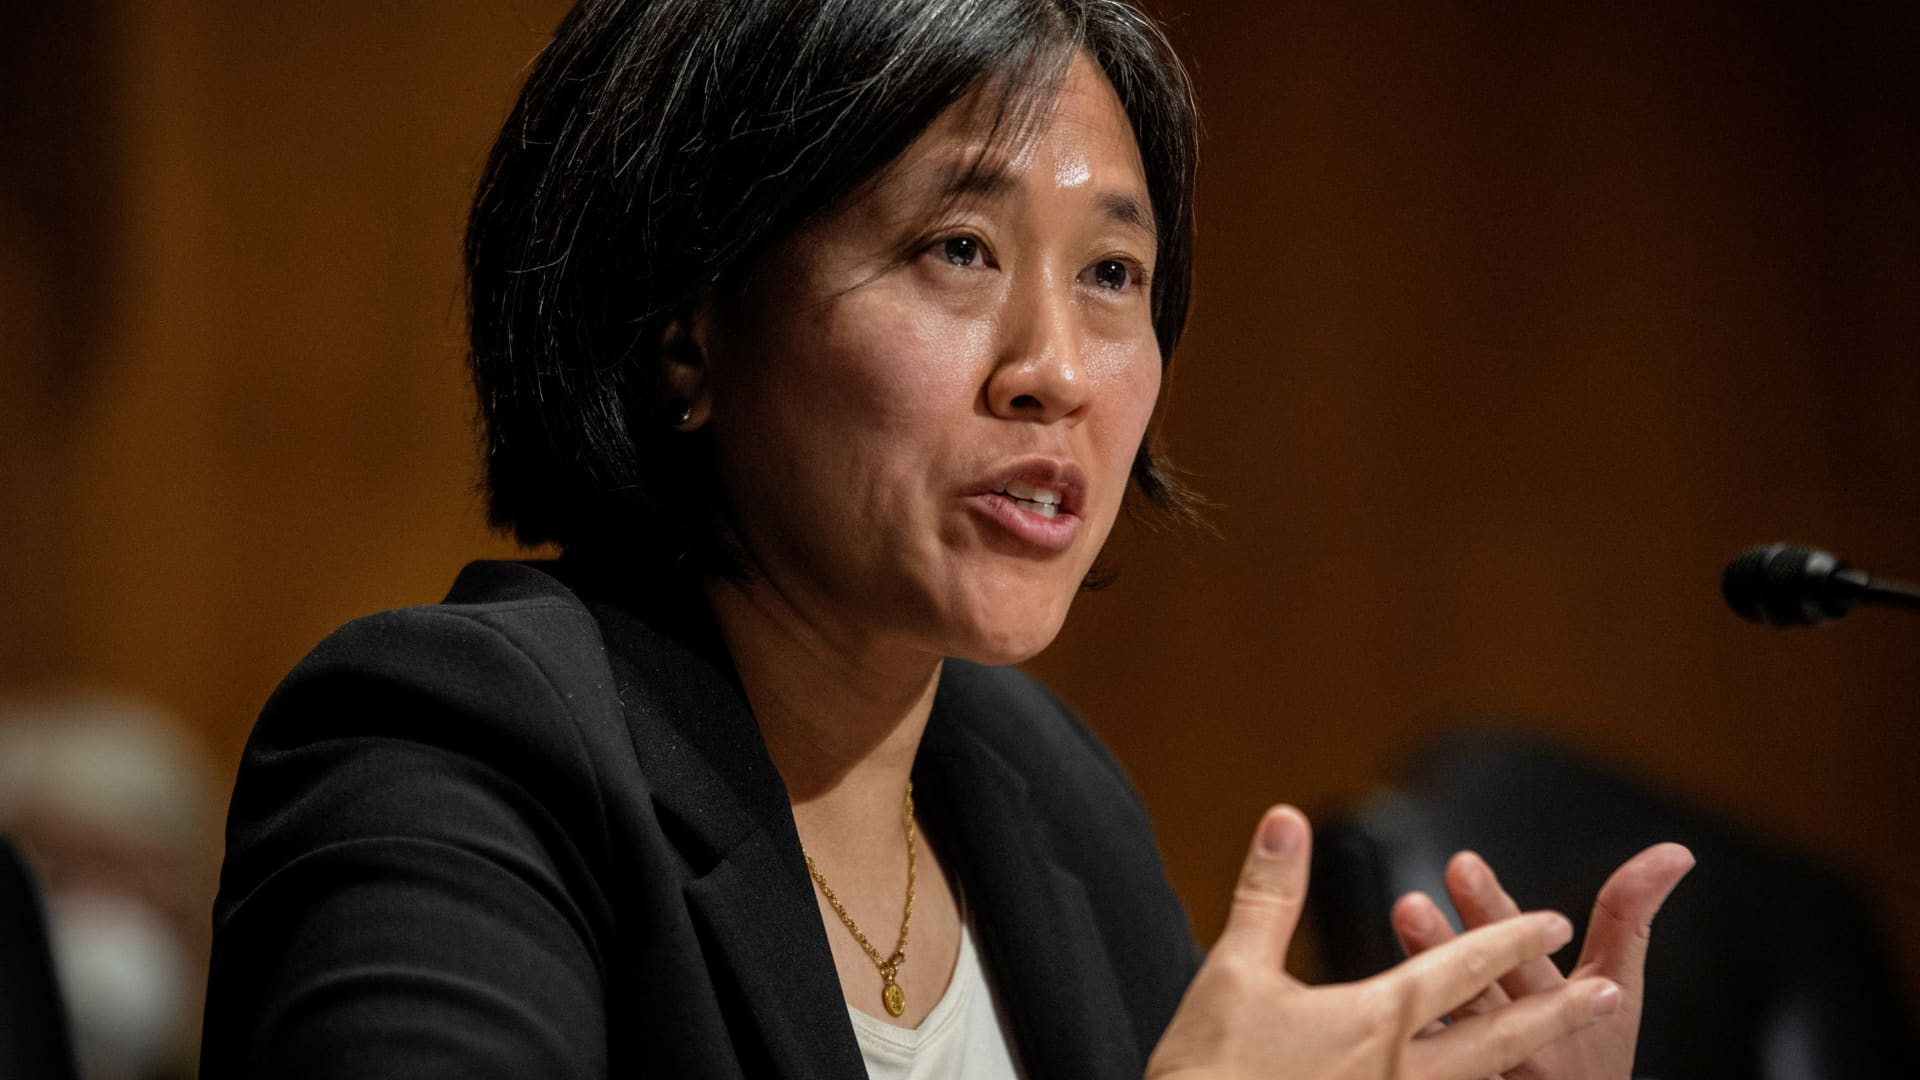 Katherine C. Tai addresses the Senate Finance committee hearings to examine her nomination to be United States Trade Representative, with the rank of Ambassador, in Washington, DC February 25, 2021.